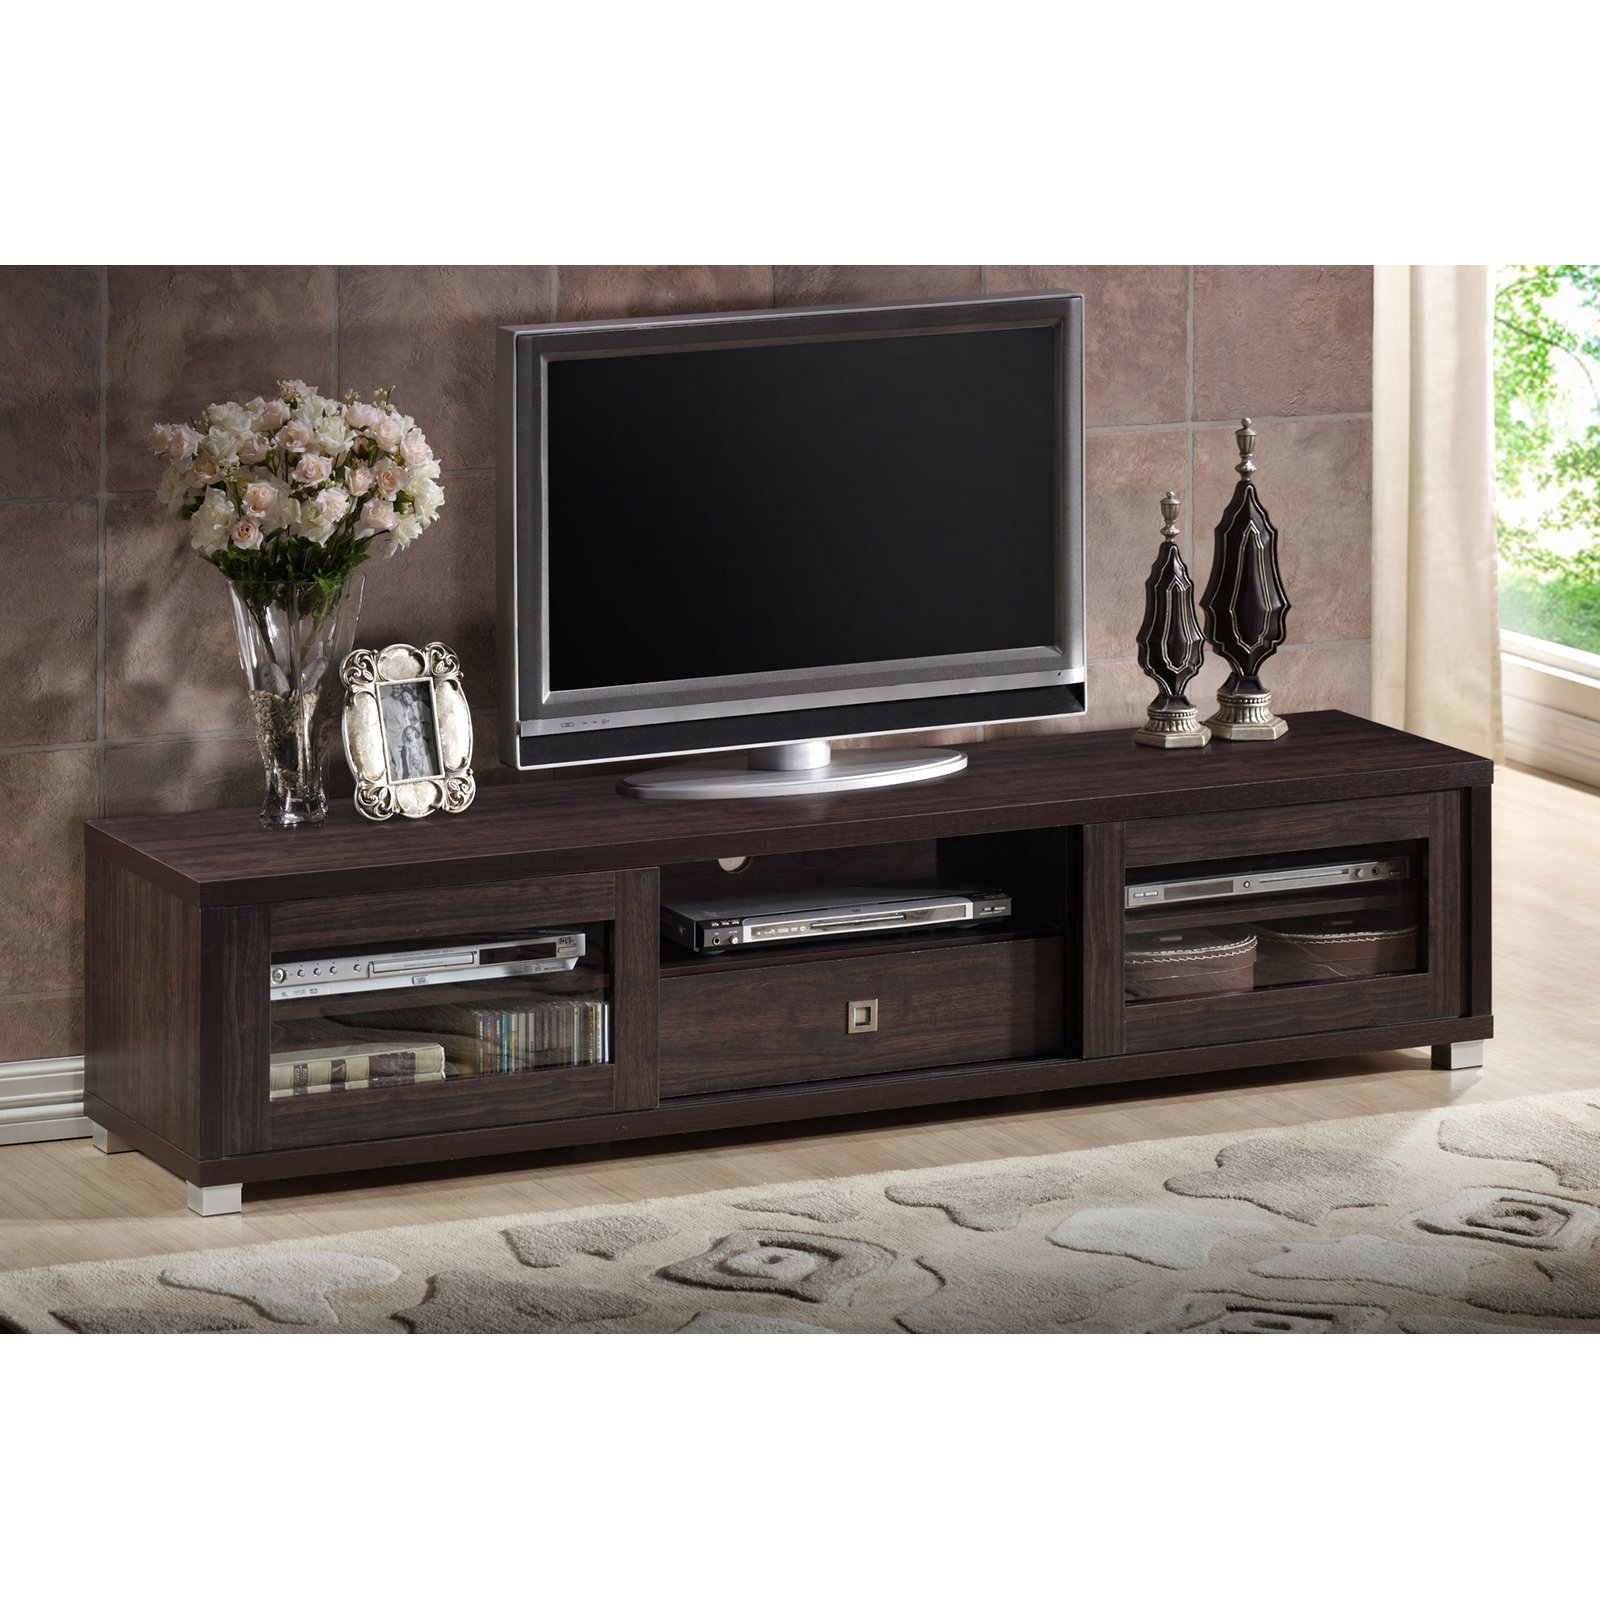 Wholesale Interiors Sculpten Dark Brown Modern Tv Stand With Glass With Recent Dark Tv Stands (View 20 of 20)